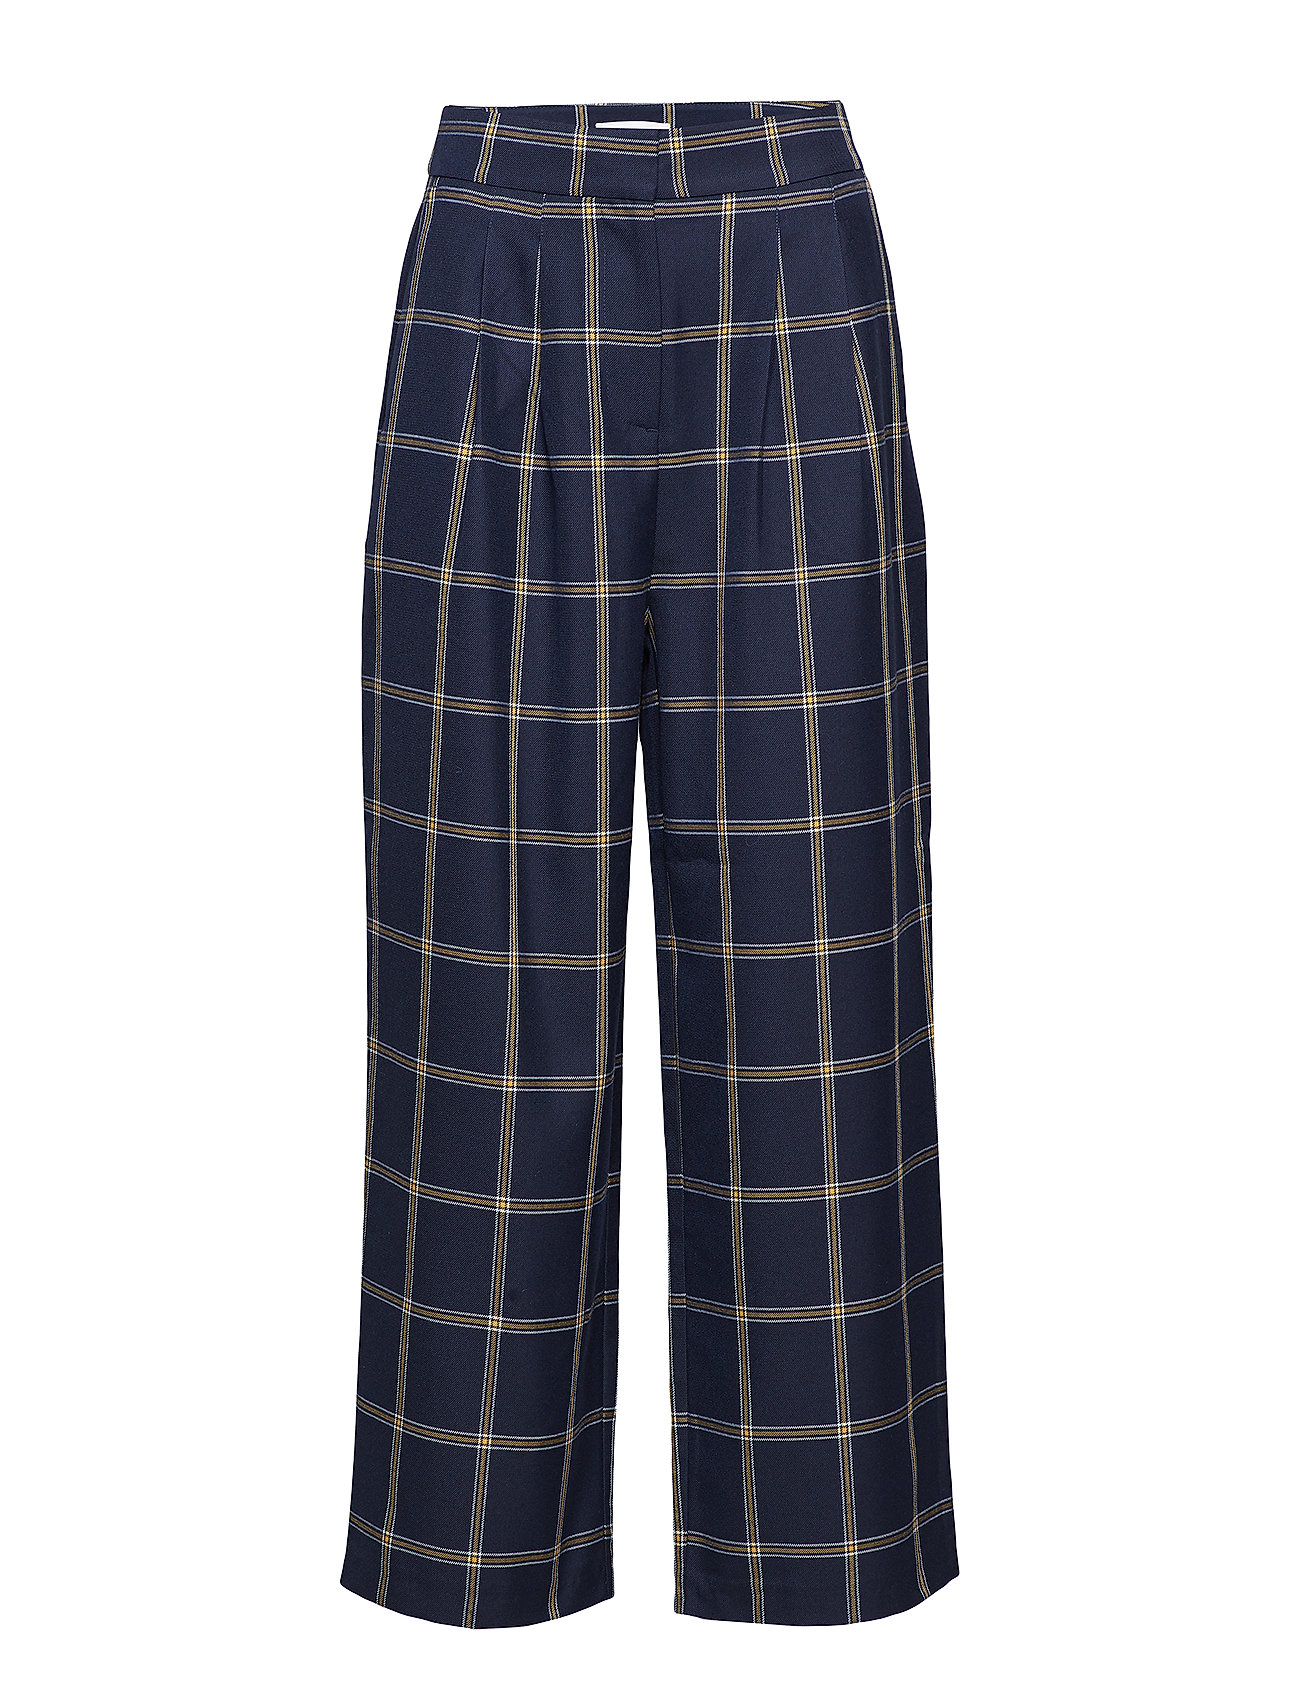 Just Female Valde Trousers (Big Check), 224.75